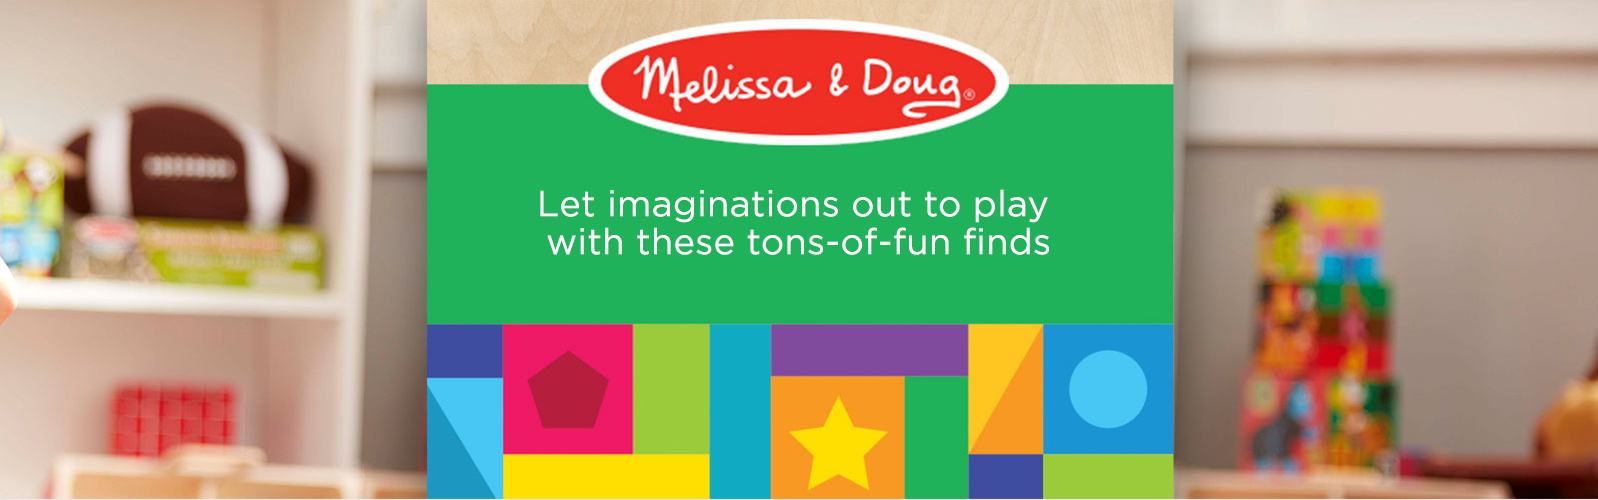 Melissa & Doug. Let imaginations out to play with these tons-of-fun finds